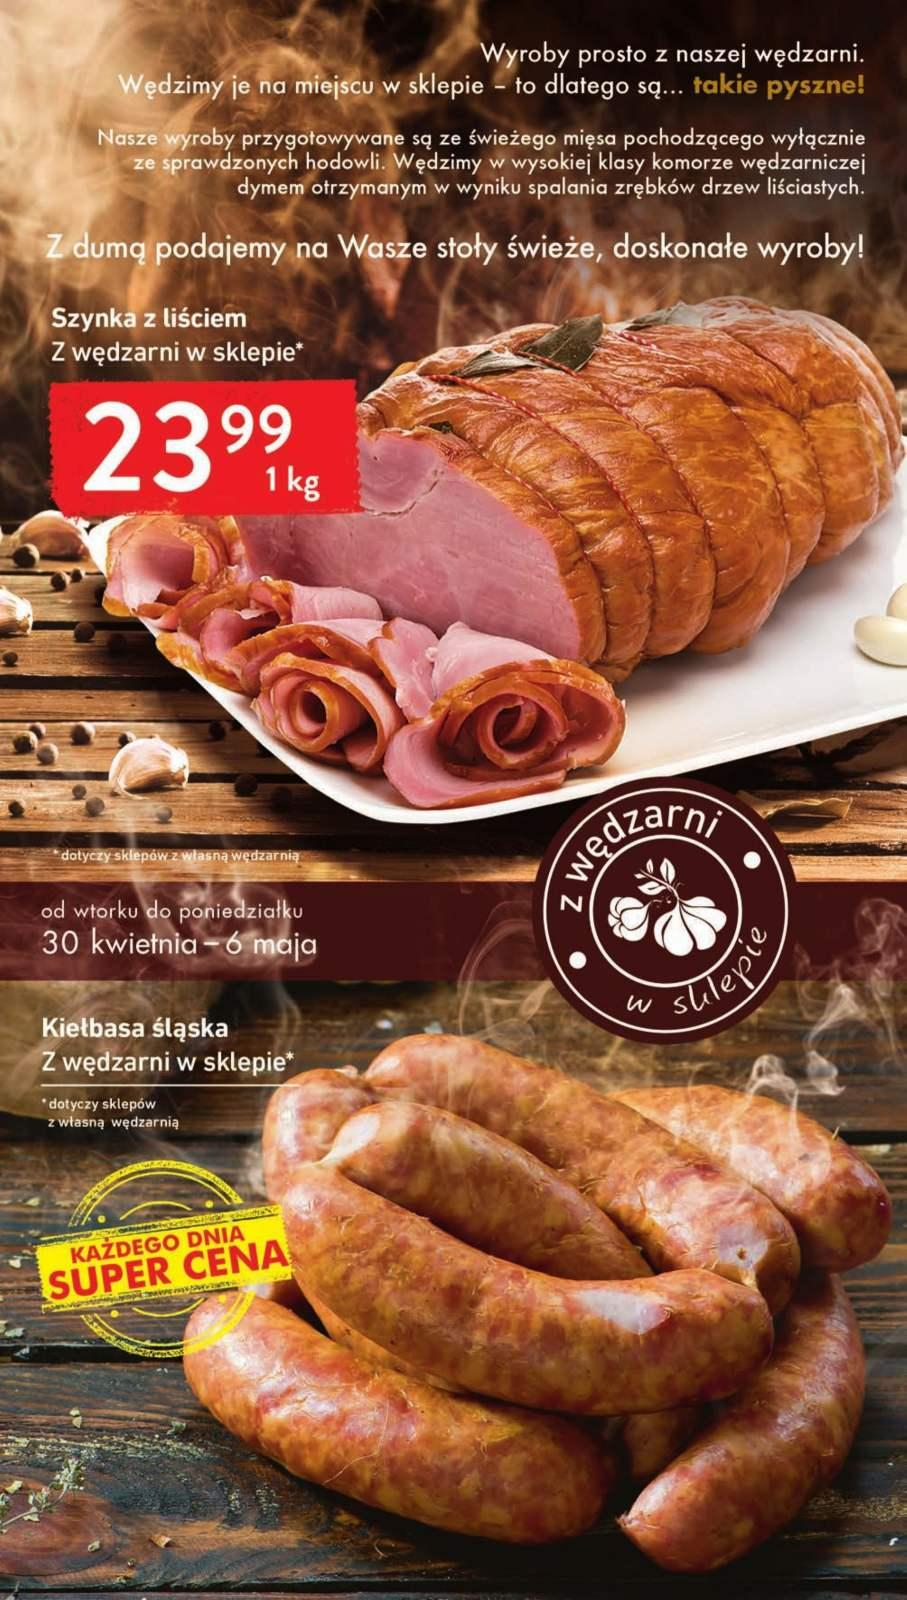 Gazetka promocyjna Intermarche do 06/05/2019 str.13